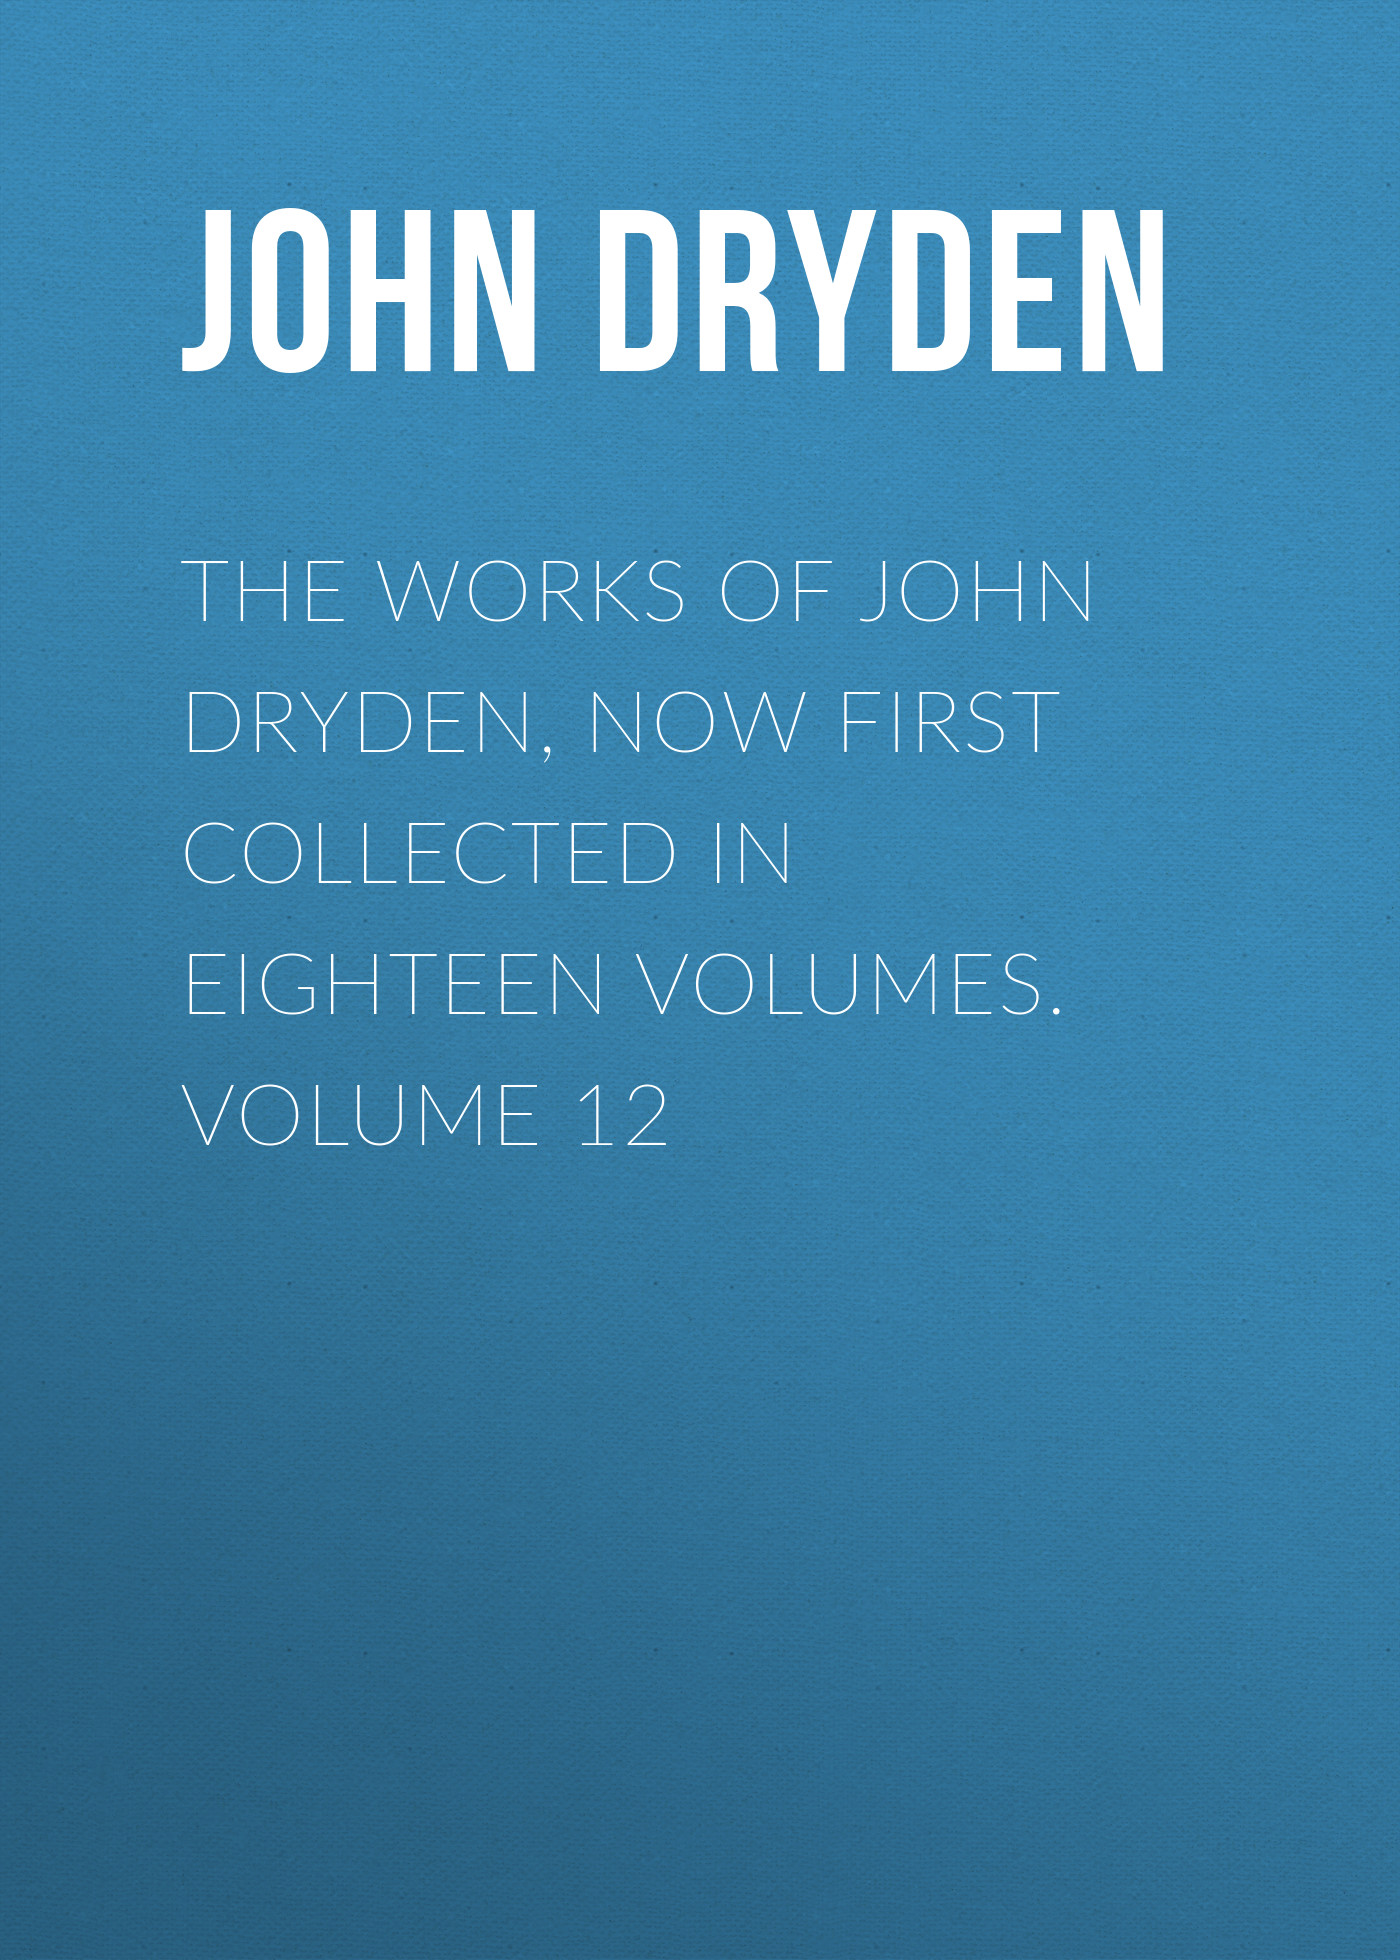 John Dryden The Works of John Dryden, now first collected in eighteen volumes. Volume 12 ruskin john 1819 1900 the poems of john ruskin now first collected from original manuscript and printed sources volume 2